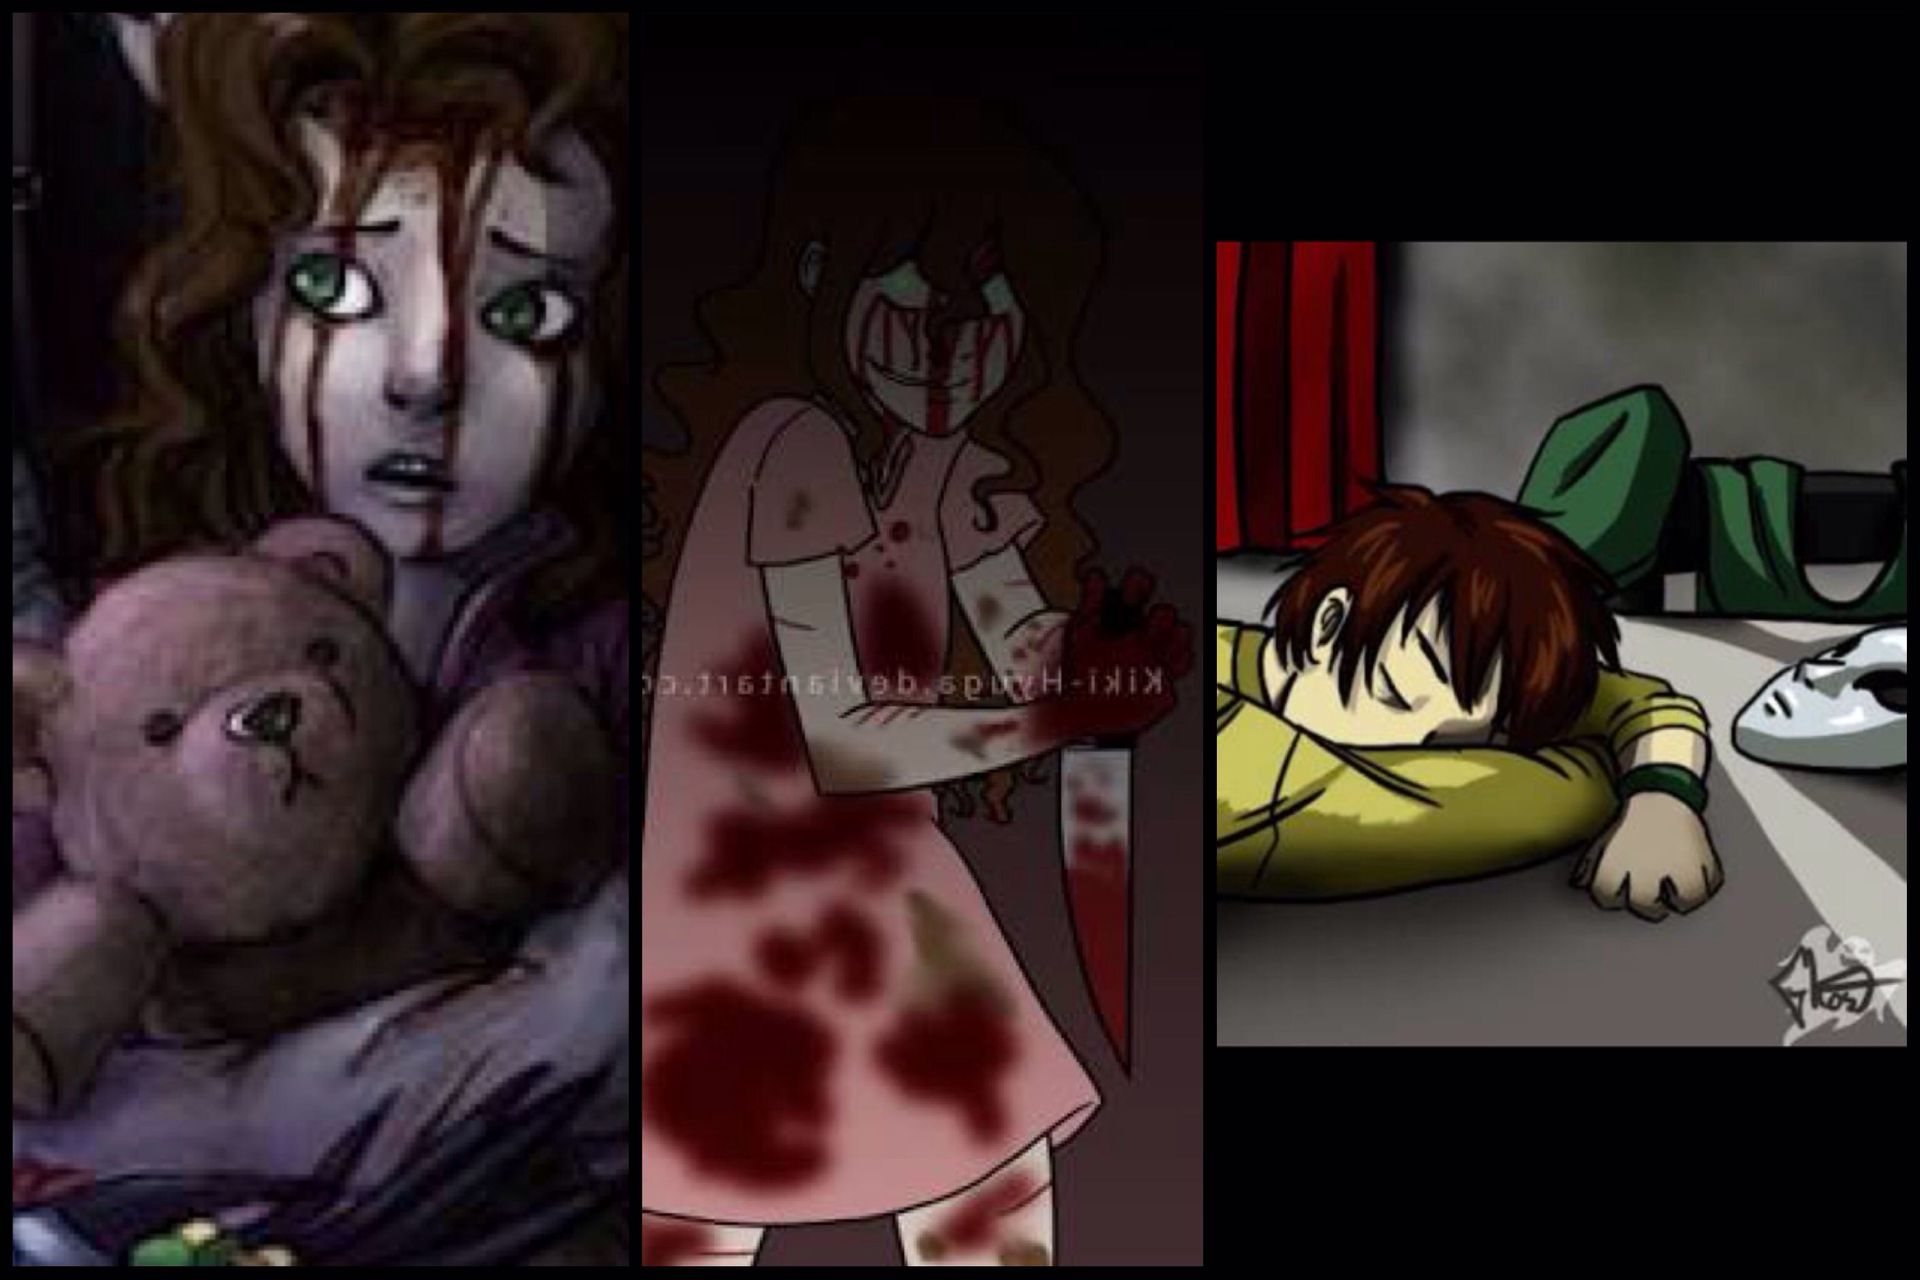 Dearest Friend... (Creepypasta Sally Williams) - Playing ... | 1920 x 1280 jpeg 169kB